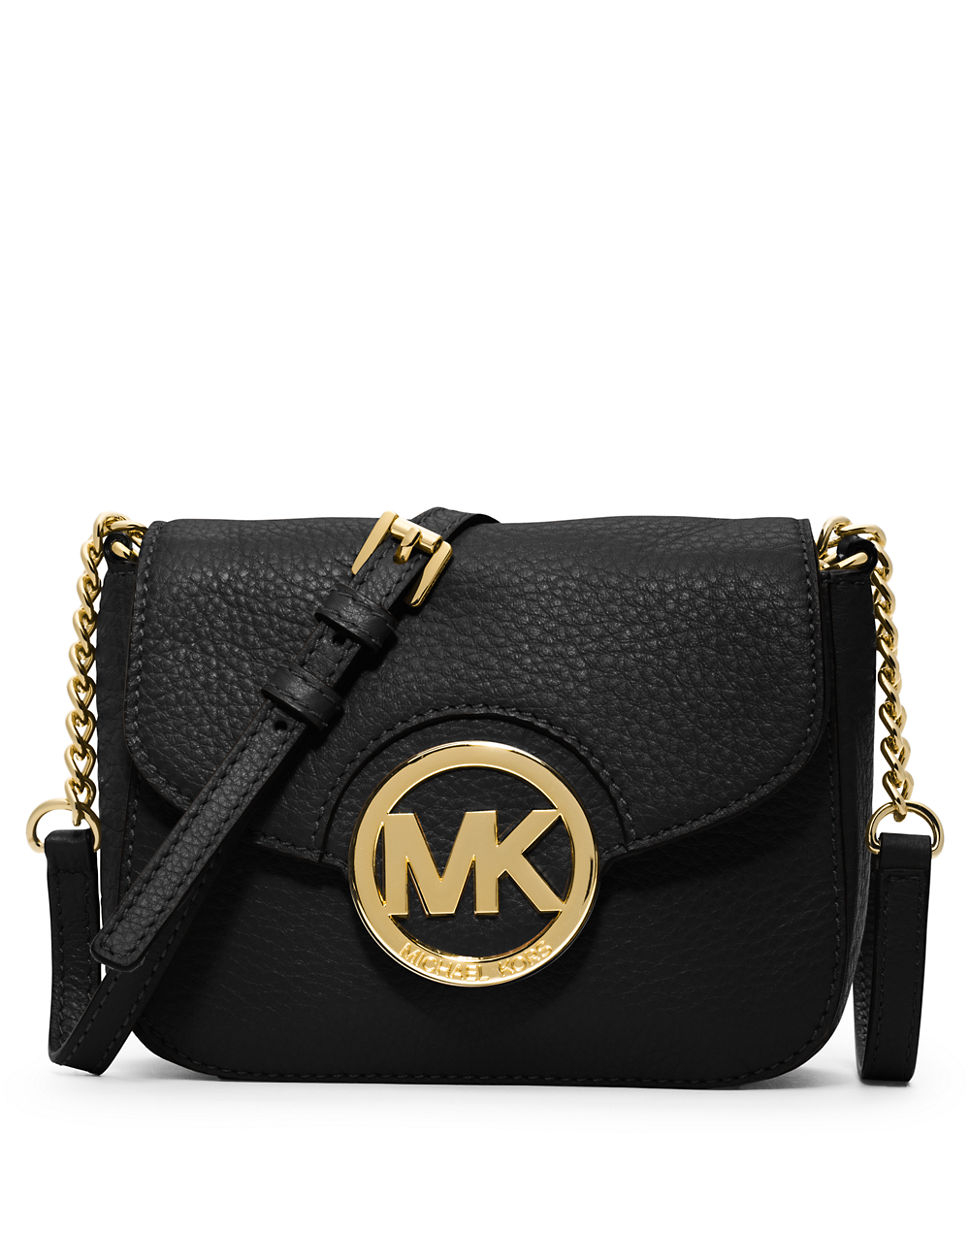 Michael Kors Fulton Leather Small Crossbody Bag In Black Lyst